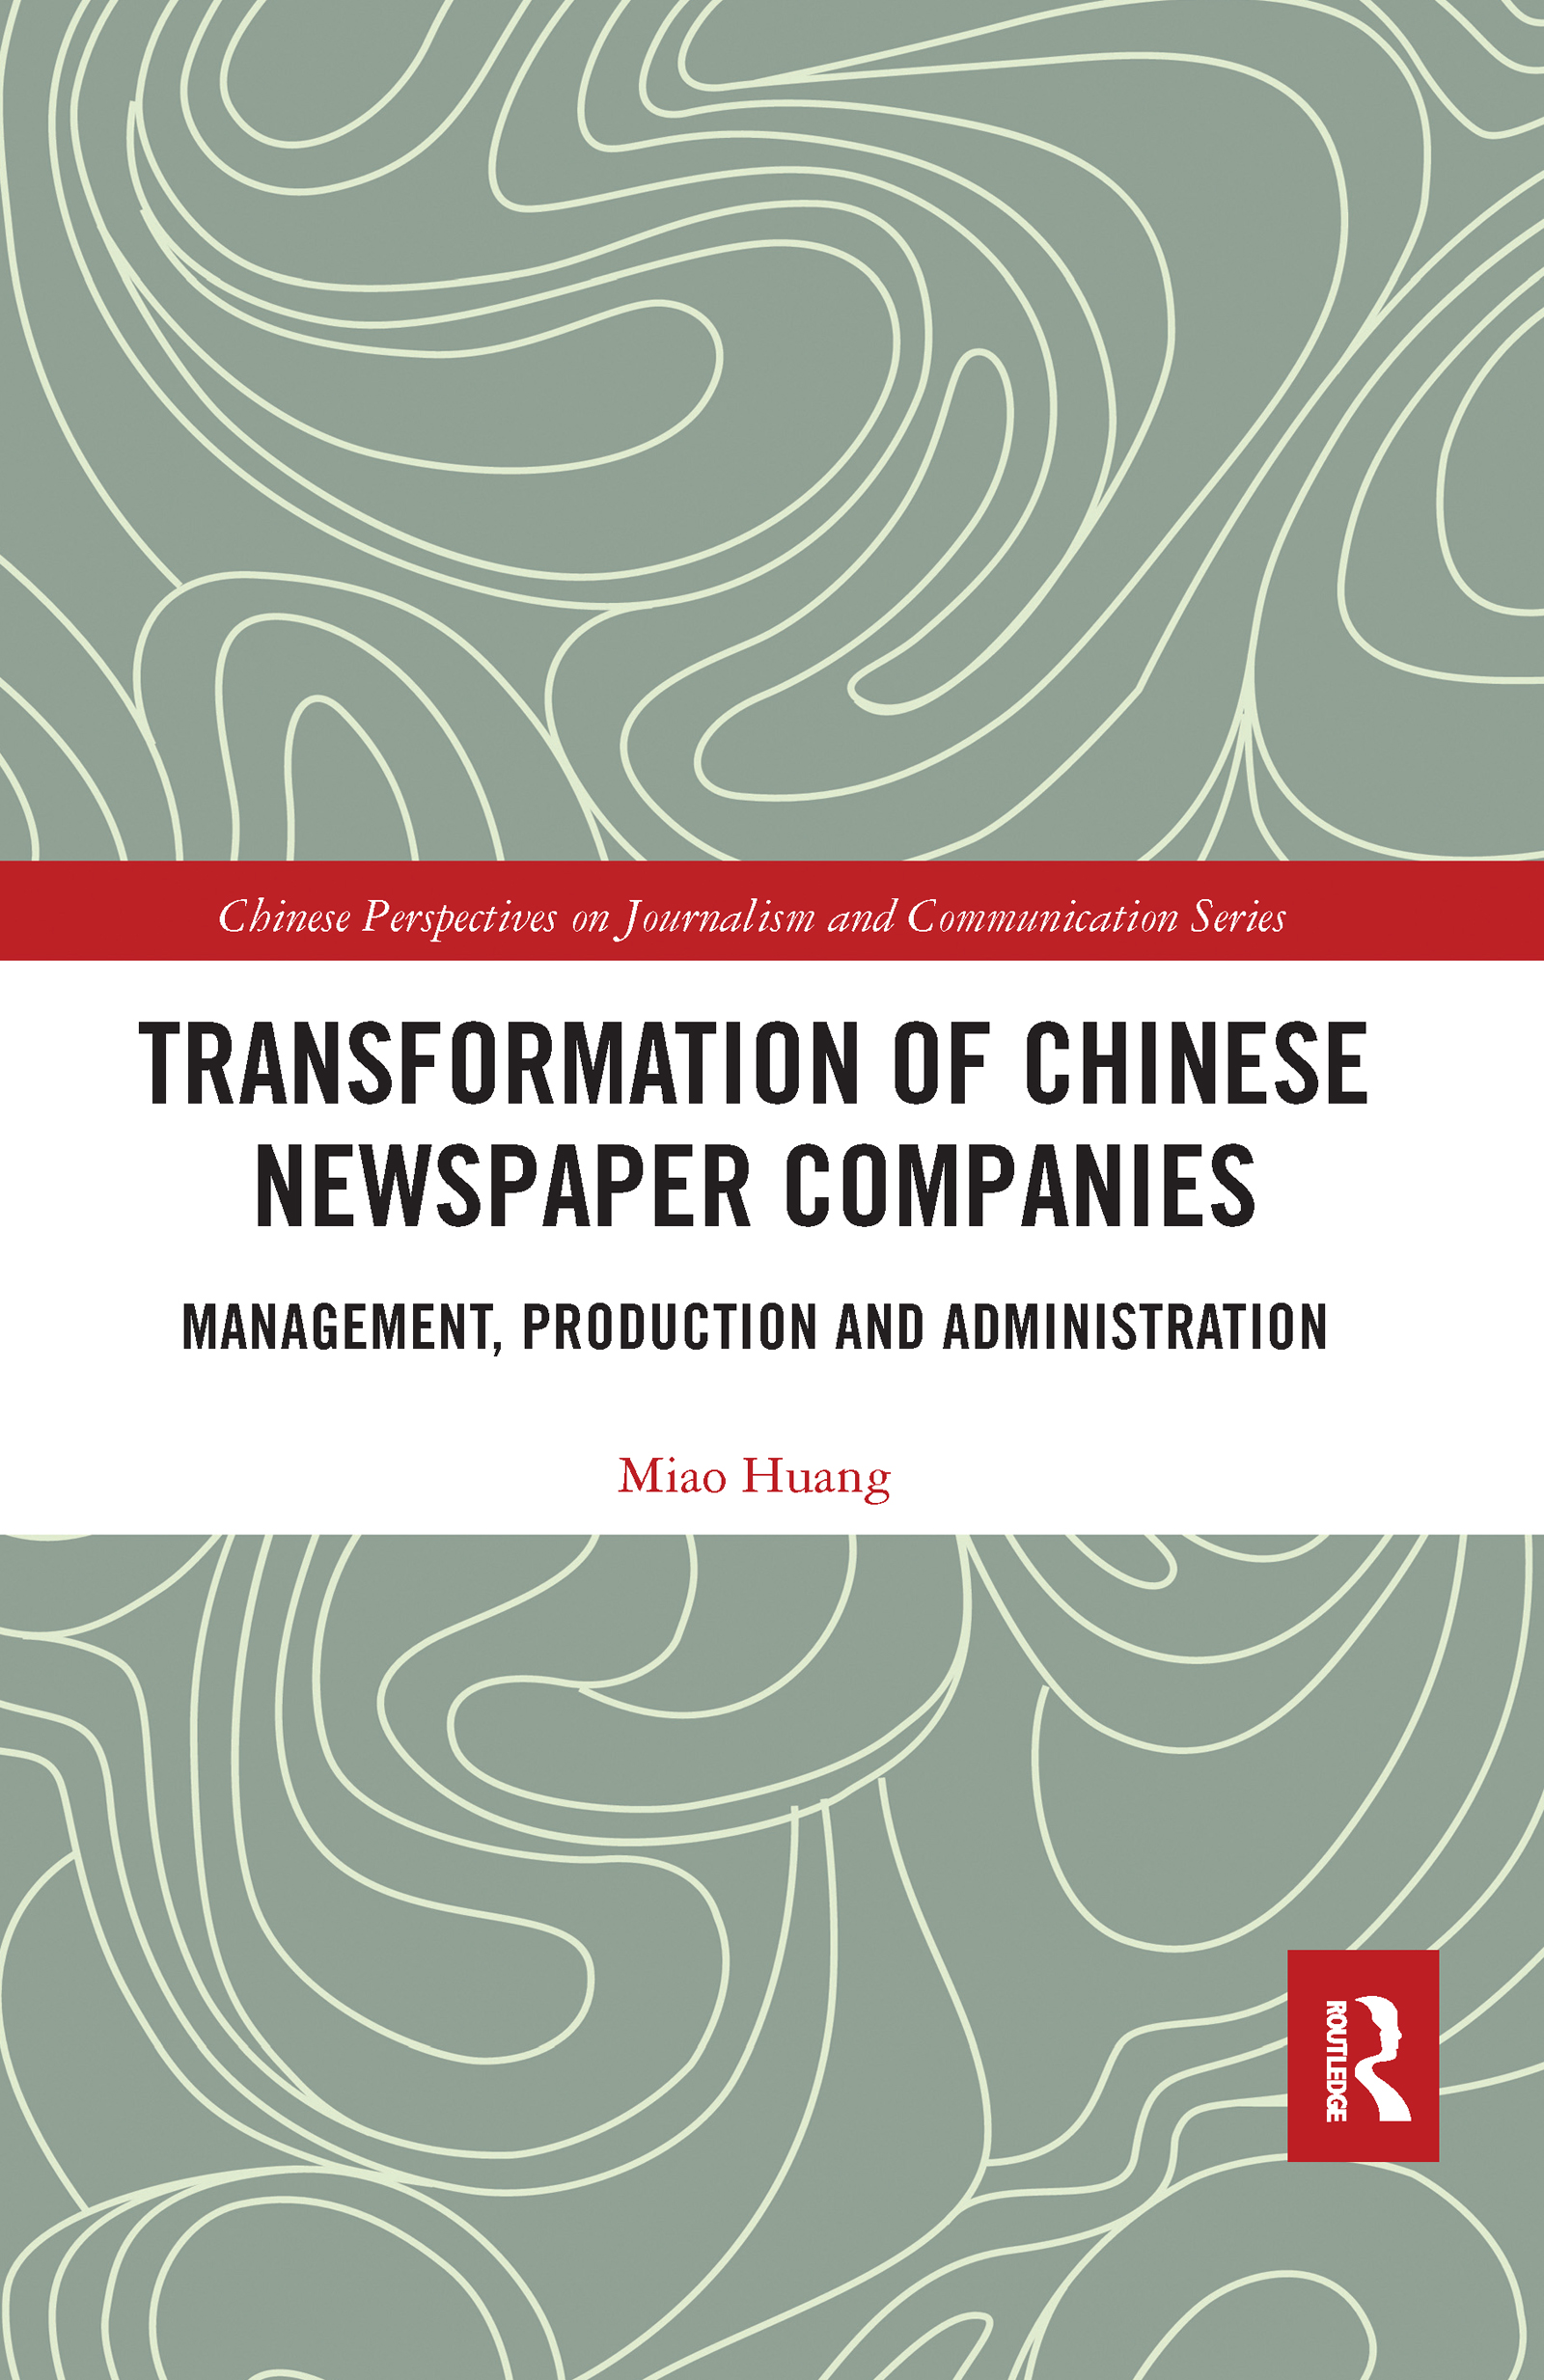 Transformation of Chinese Newspaper Companies